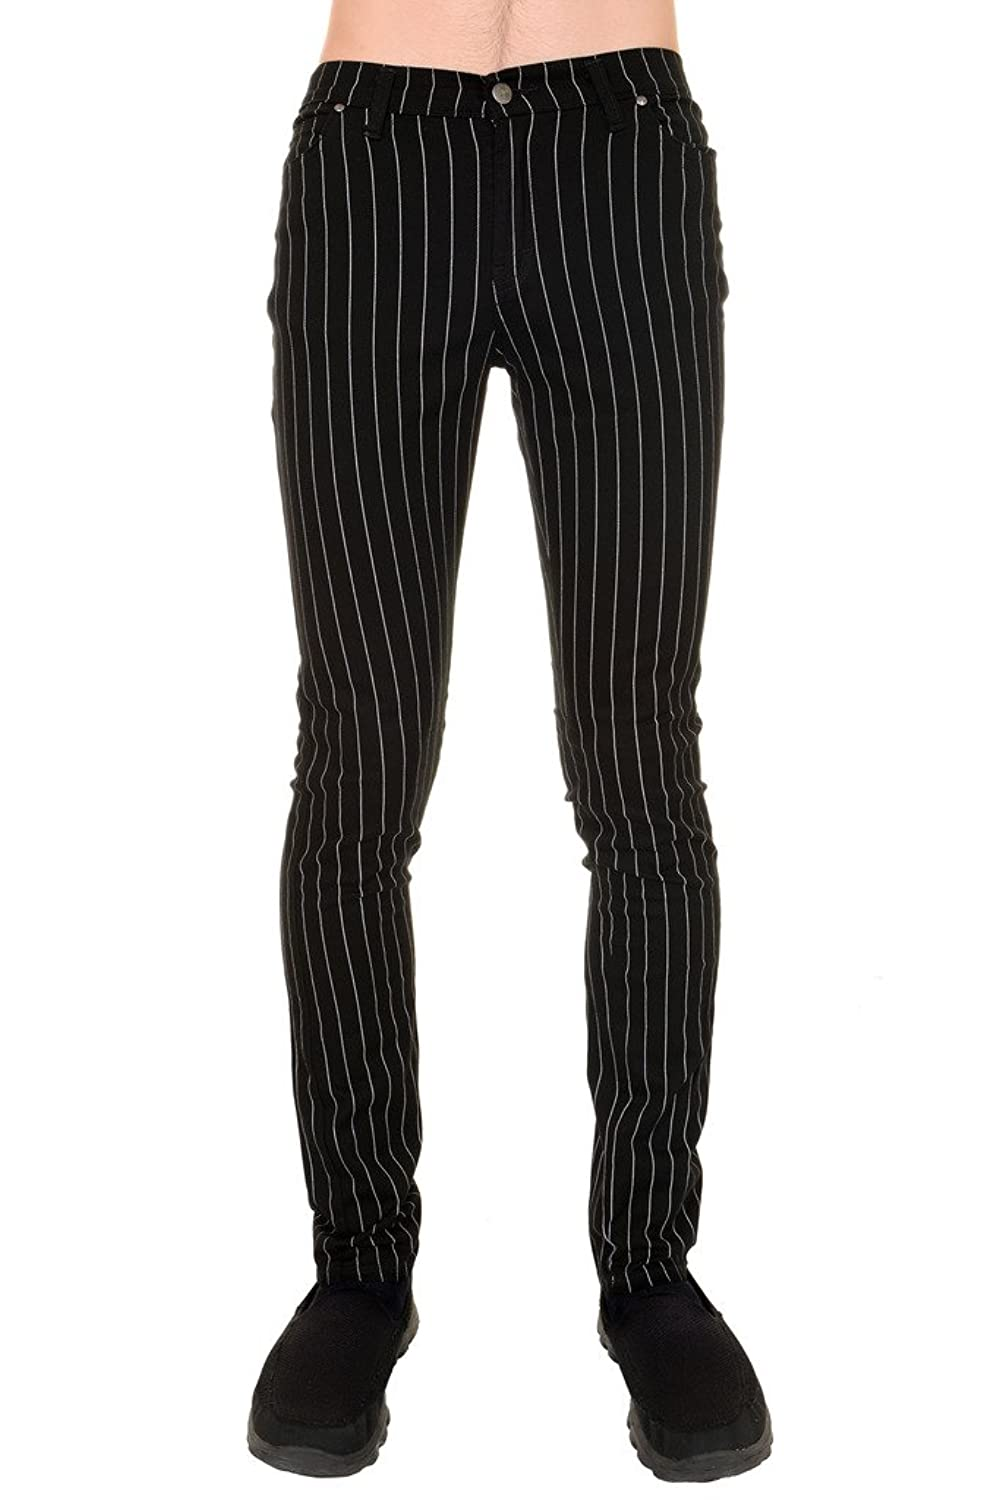 Steampunk Pants Mens Mens Indie Vintage Retro 60s 70s Mod Black White Pin Striped Stretch Skinny Jeans $51.95 AT vintagedancer.com